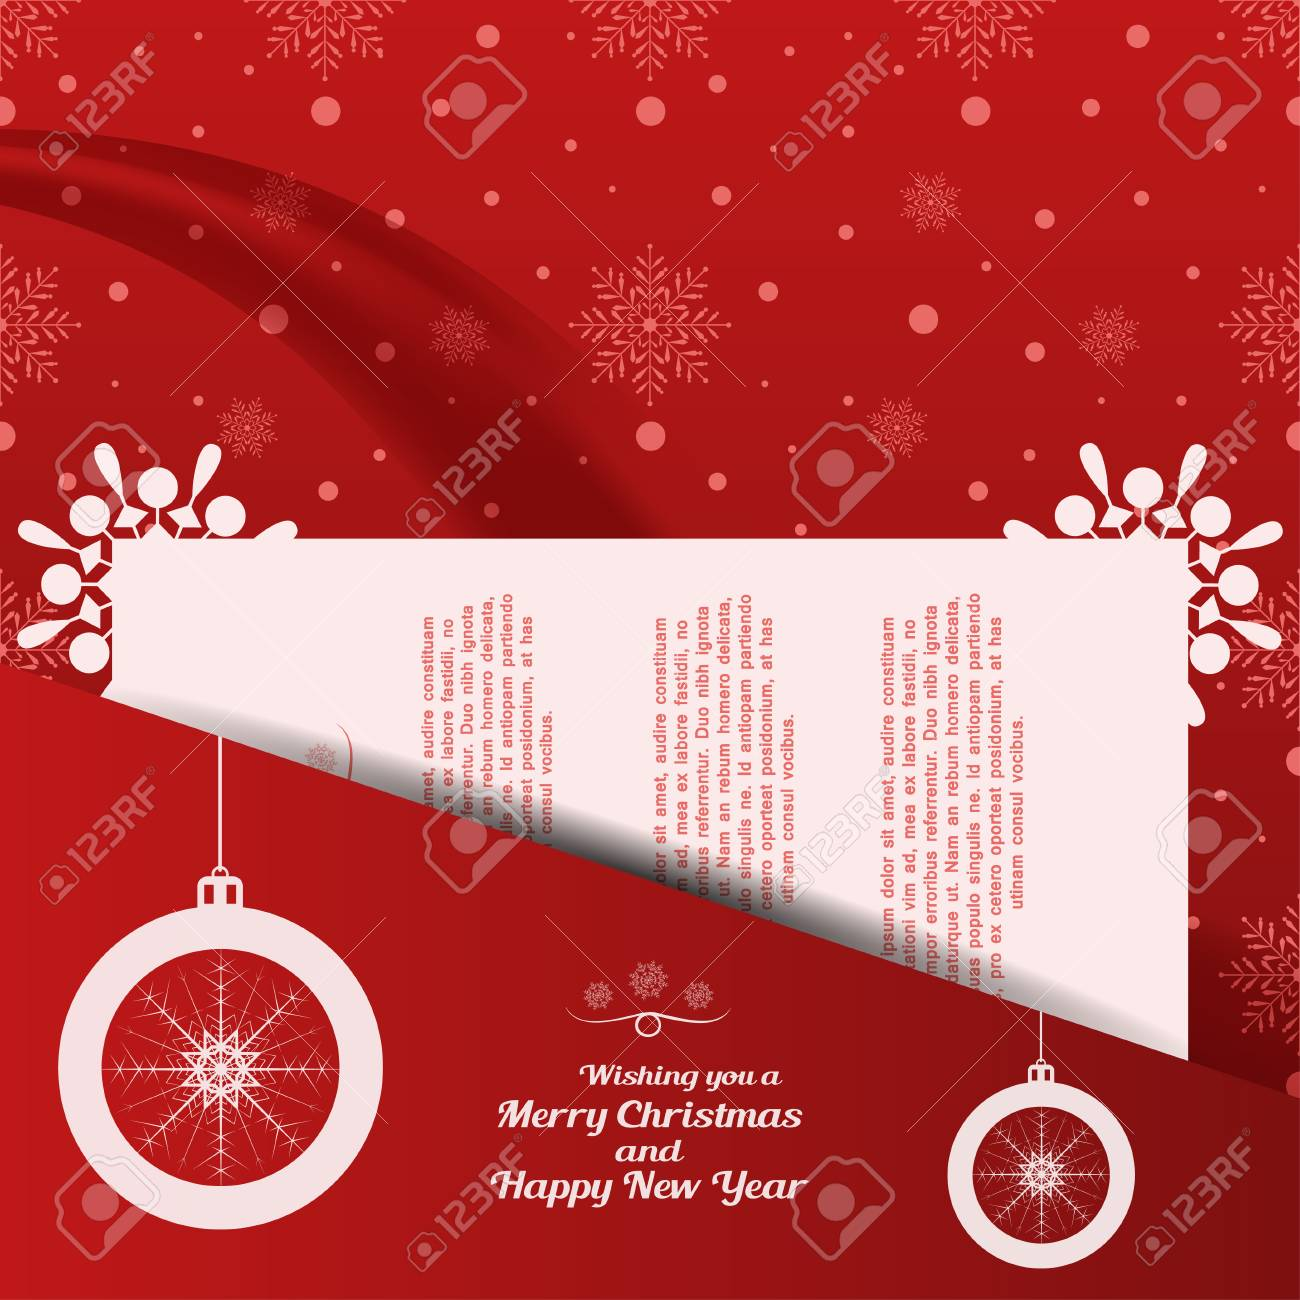 Vector Greetings Envelope Of Wishing You A Merry Christmas And